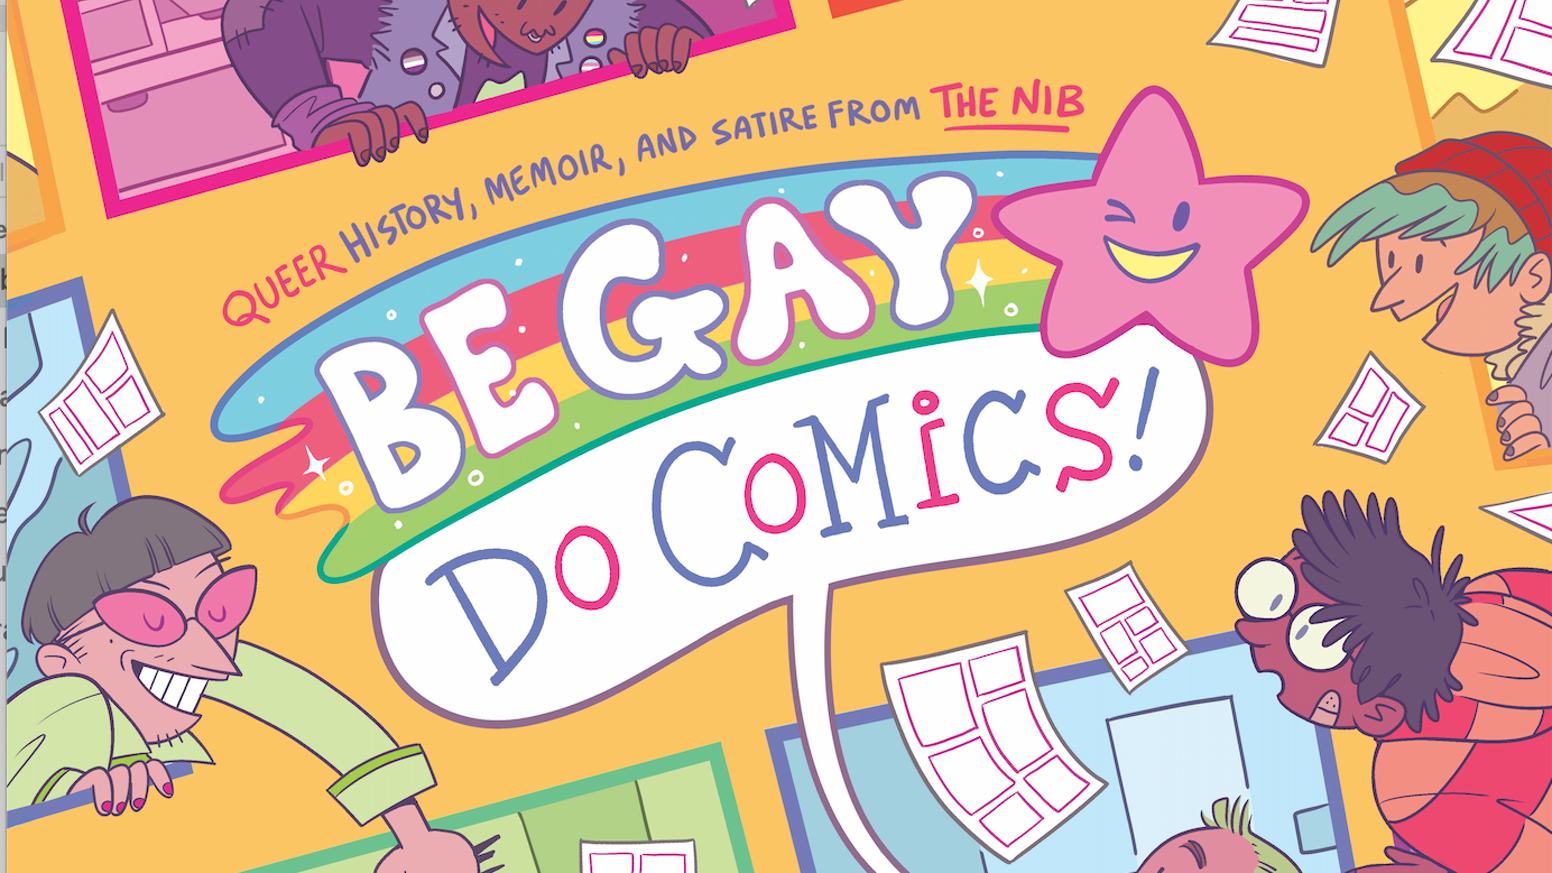 Be Gay, Do Comics will be 250 pages of queer history, memoir and satire from The Nib, printed and shipped right to your doorstep.